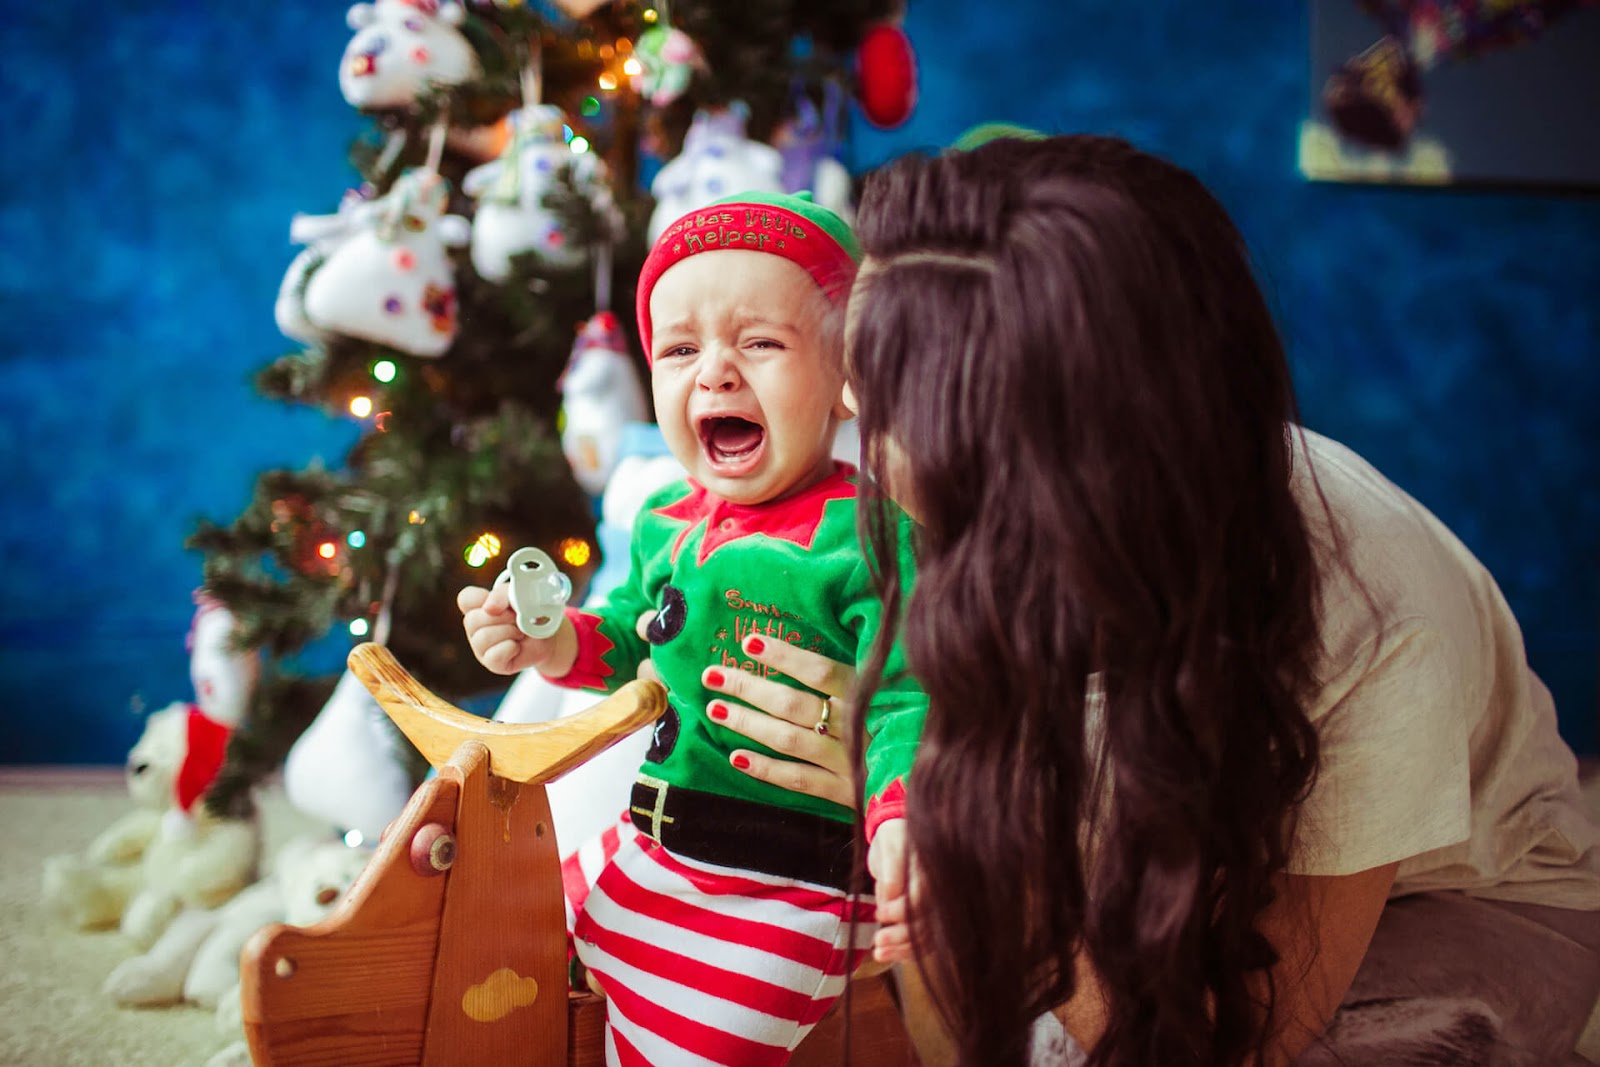 Baby crying in front of Christmas tree